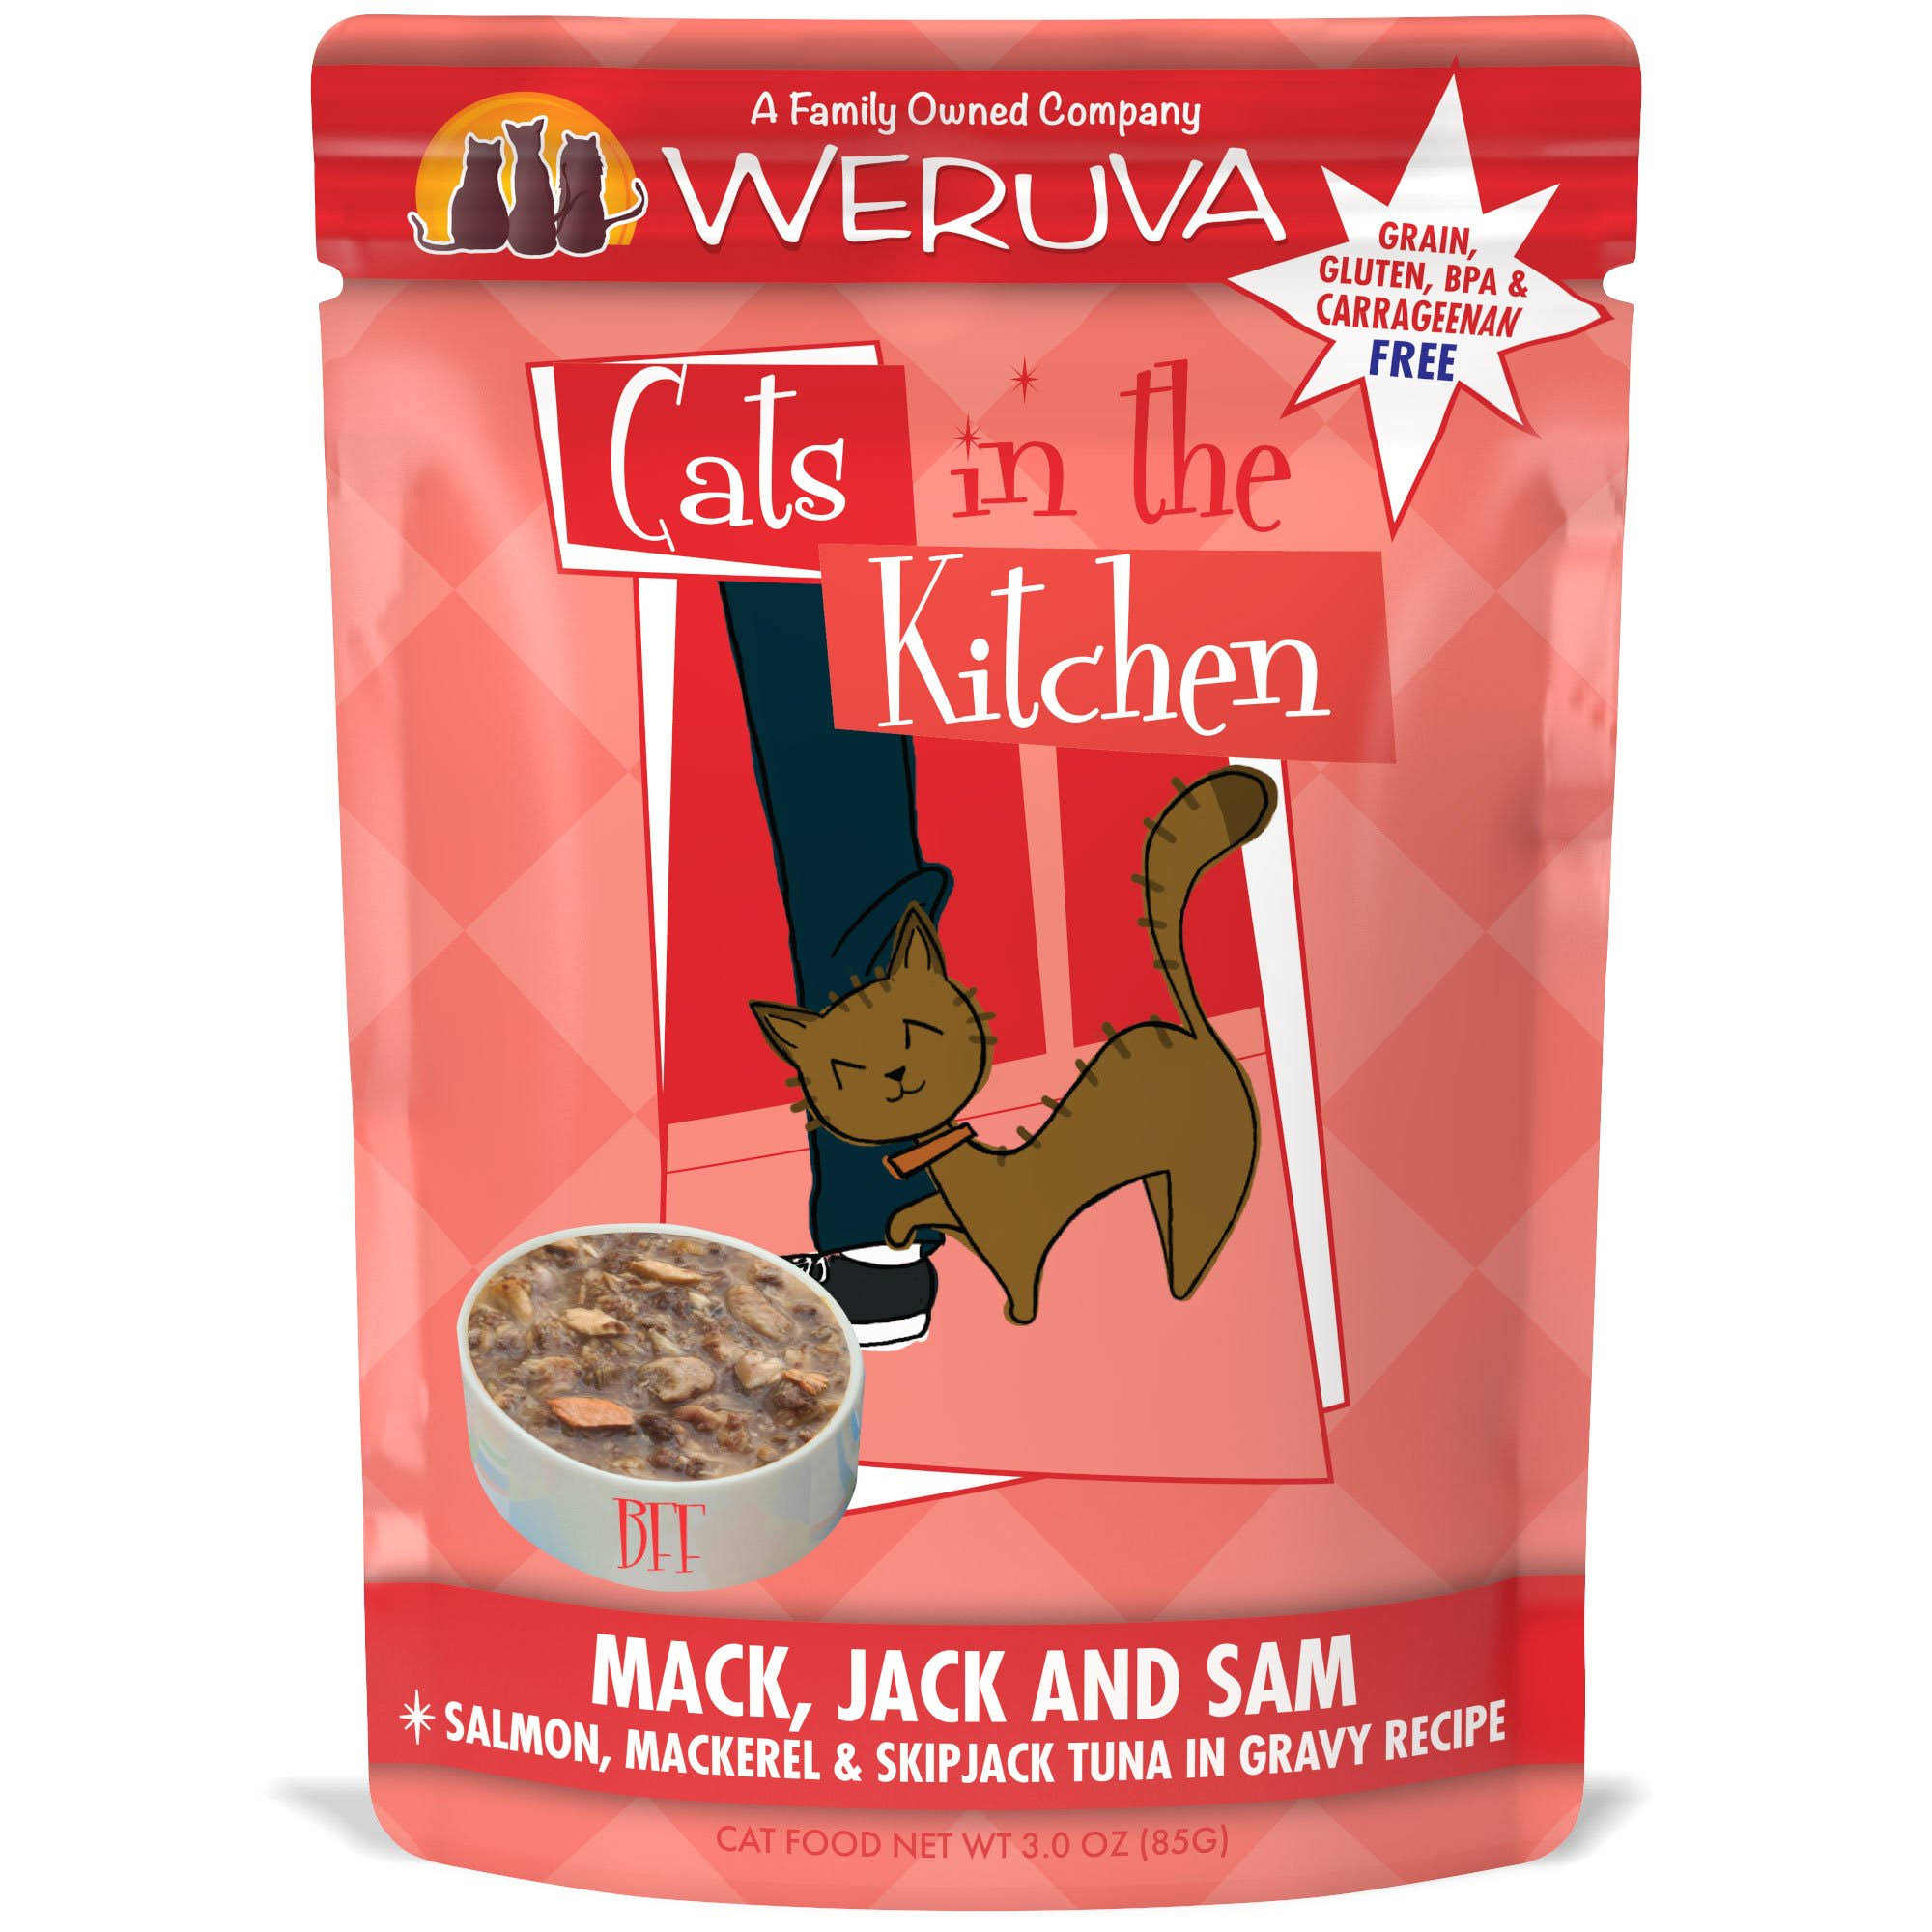 Weruva Cats in The Kitchen Mack Jack and Sam Cat Food - Salmon Mackerel and Skipjack Tuna in Gravy